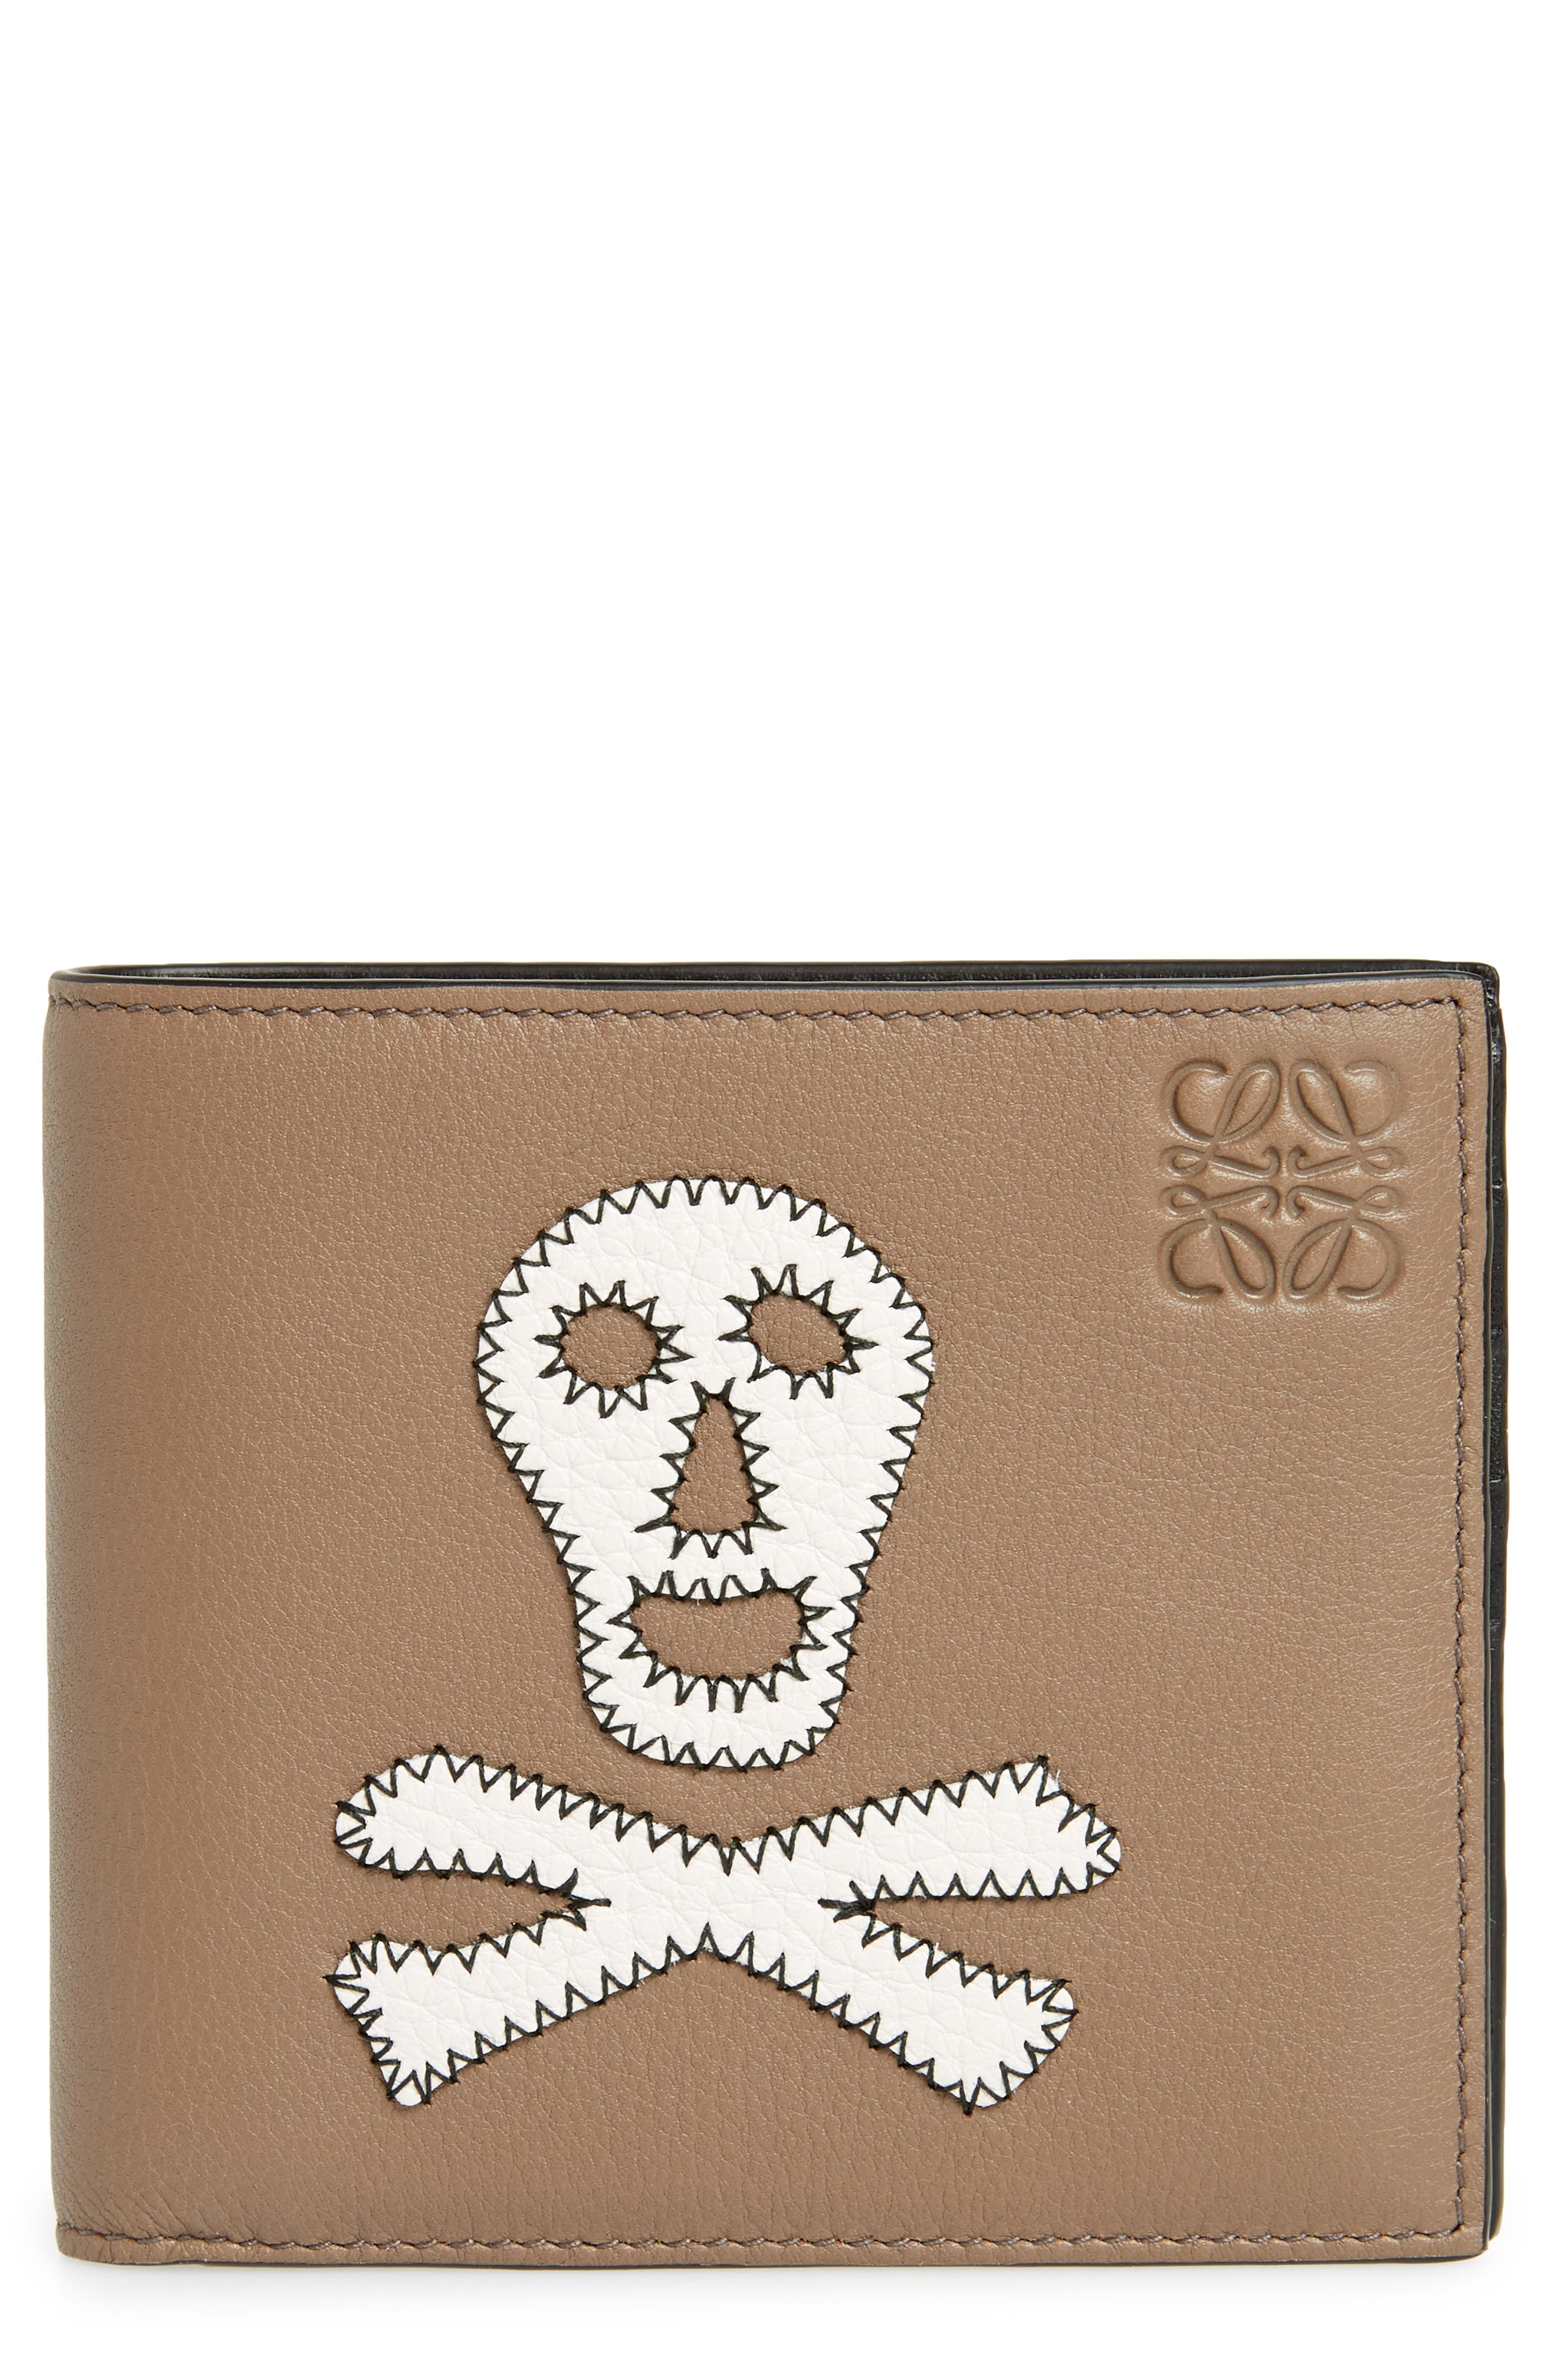 Skull Leather Bifold Wallet,                             Main thumbnail 1, color,                             922